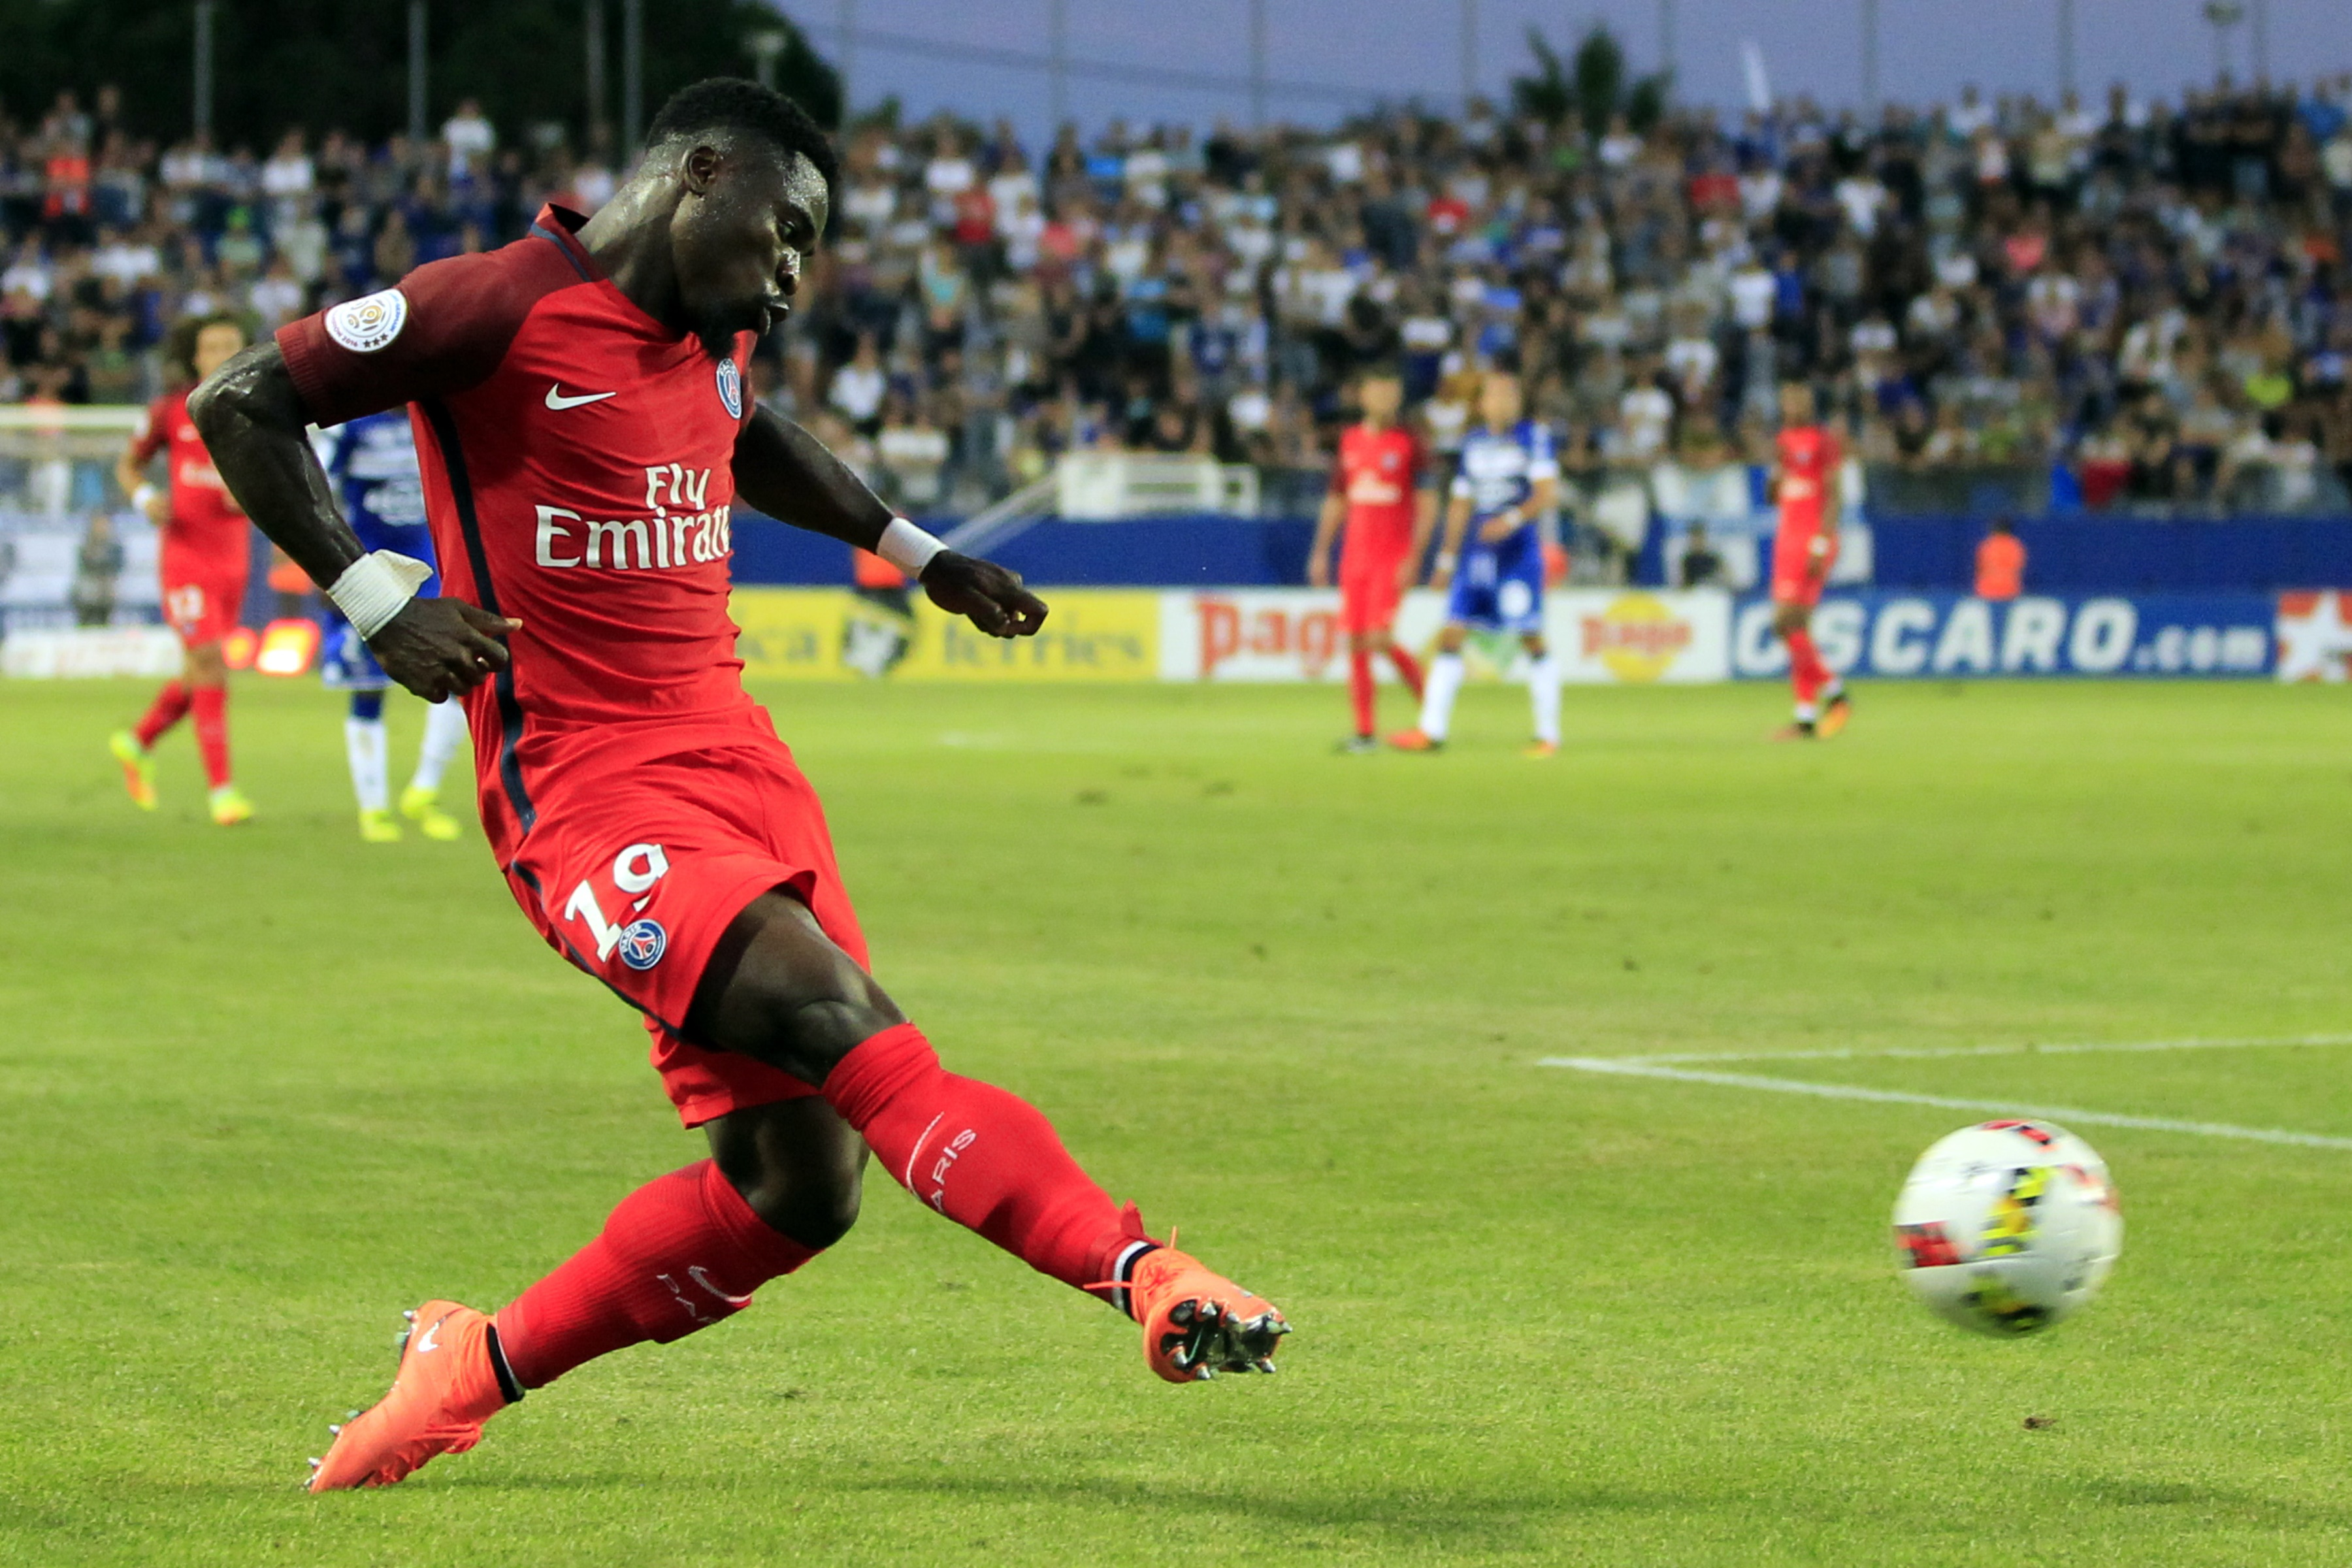 Paris Saint-Germain's Ivorian defender Serge Aurier kicks the ball during the French Ligue 1 footbal match Bastia (SCB) against Paris Saint Germain (PSG) on August 12, 2016 at the Armand Cesari stadium in Bastia on the French Mediterranean island of Corsica. AFP PHOTO / PASCAL POCHARD-CASABIANCA / AFP / PASCAL POCHARD CASABIANCA (Photo credit should read PASCAL POCHARD CASABIANCA/AFP/Getty Images)